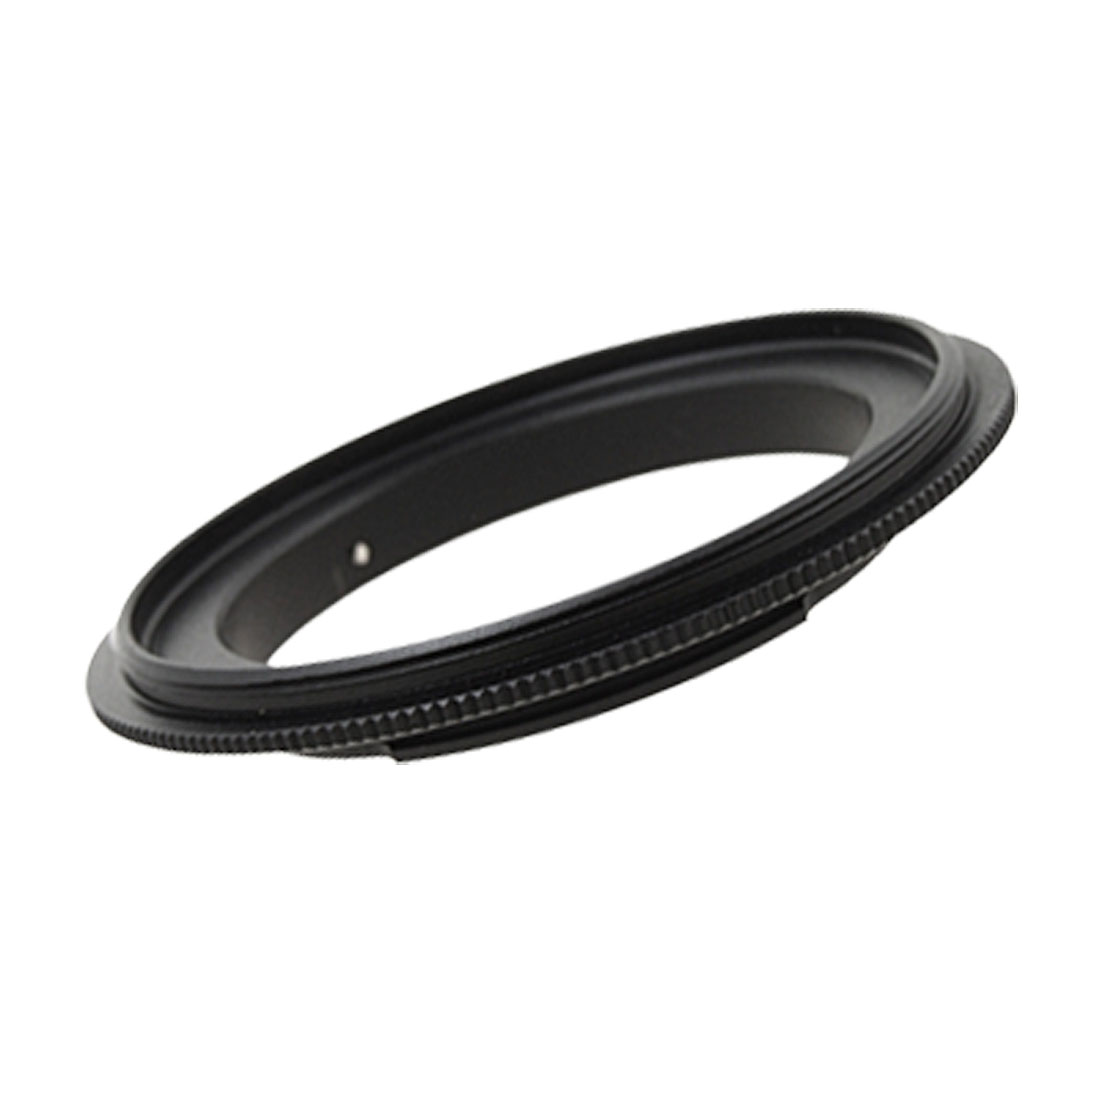 55mm Digital Camera Lens Reversal Filter Ring Mount Adapter for SLR